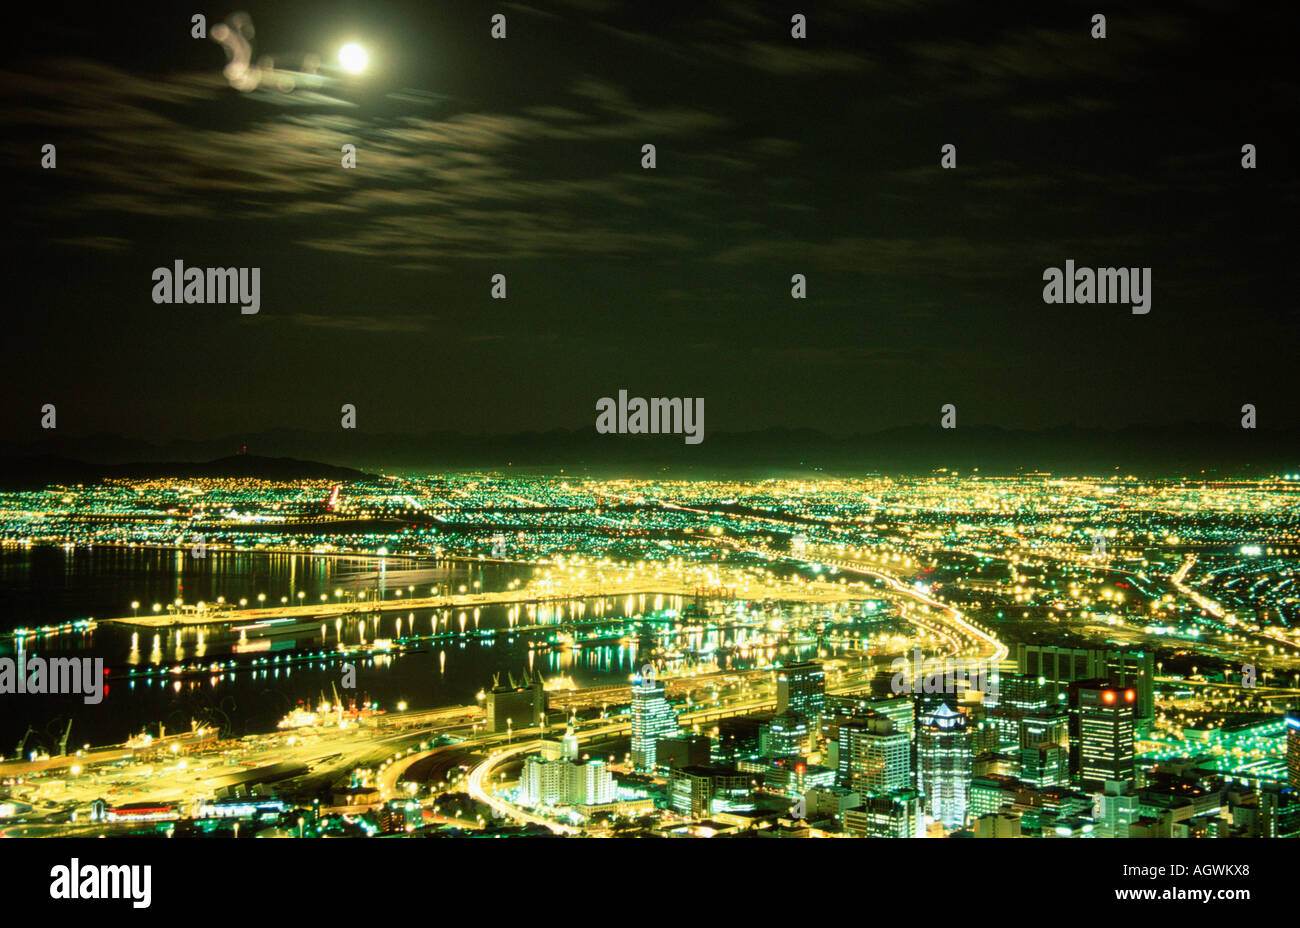 Capetown at night / Kapstadt bei Nacht - Stock Image